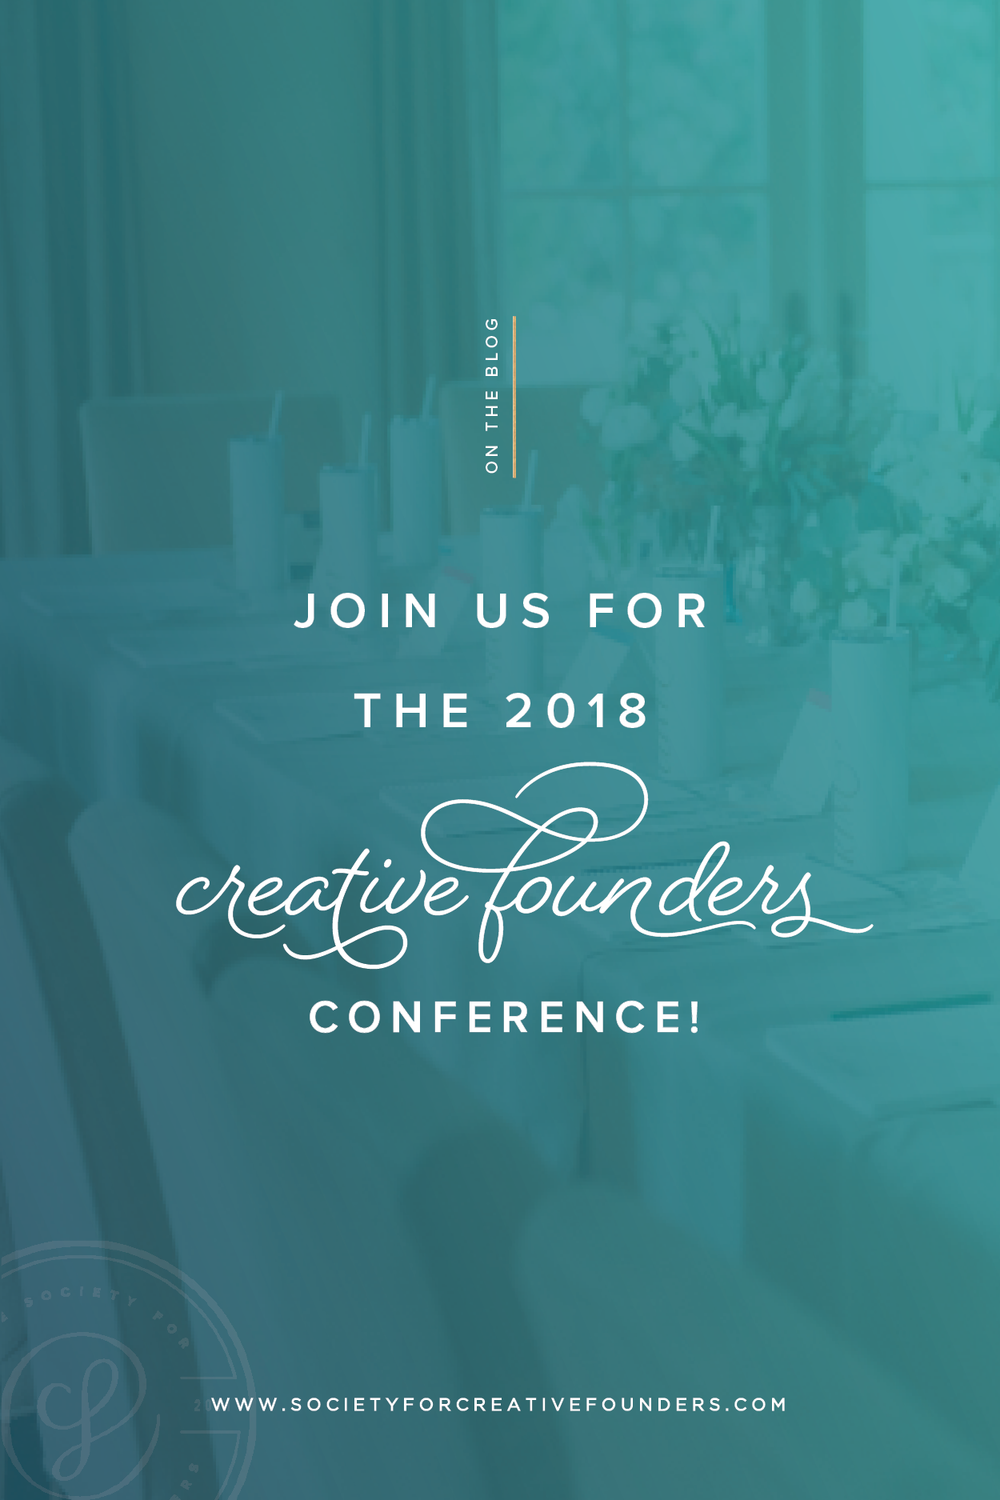 Creative Founders Conference - Join us April 15-18, 2018!